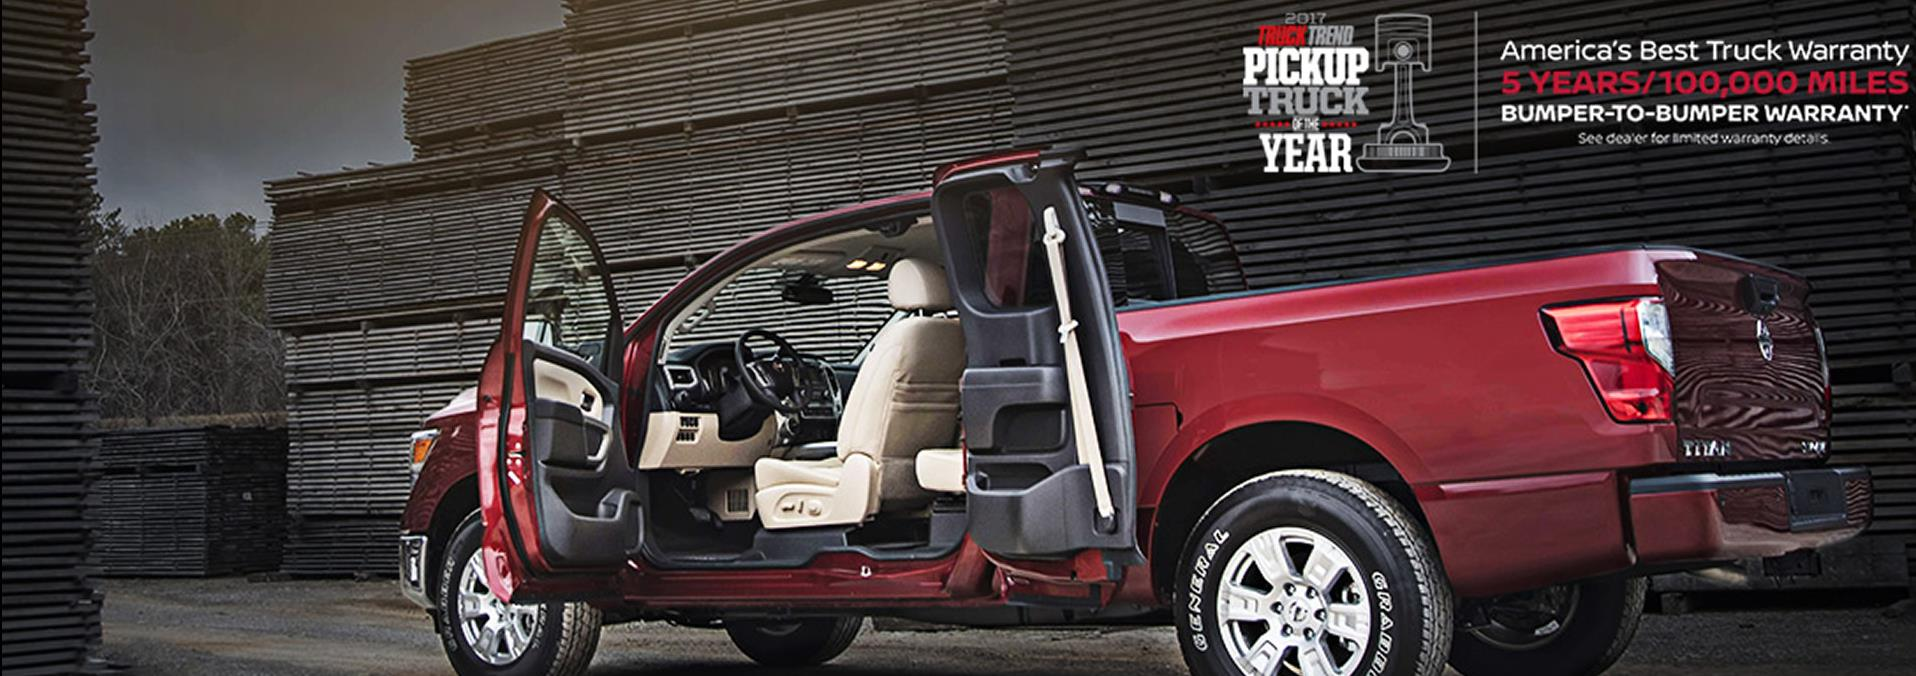 Nissan of paducah paducah ky new used cars trucks autos post for Perkins motors mayfield ky